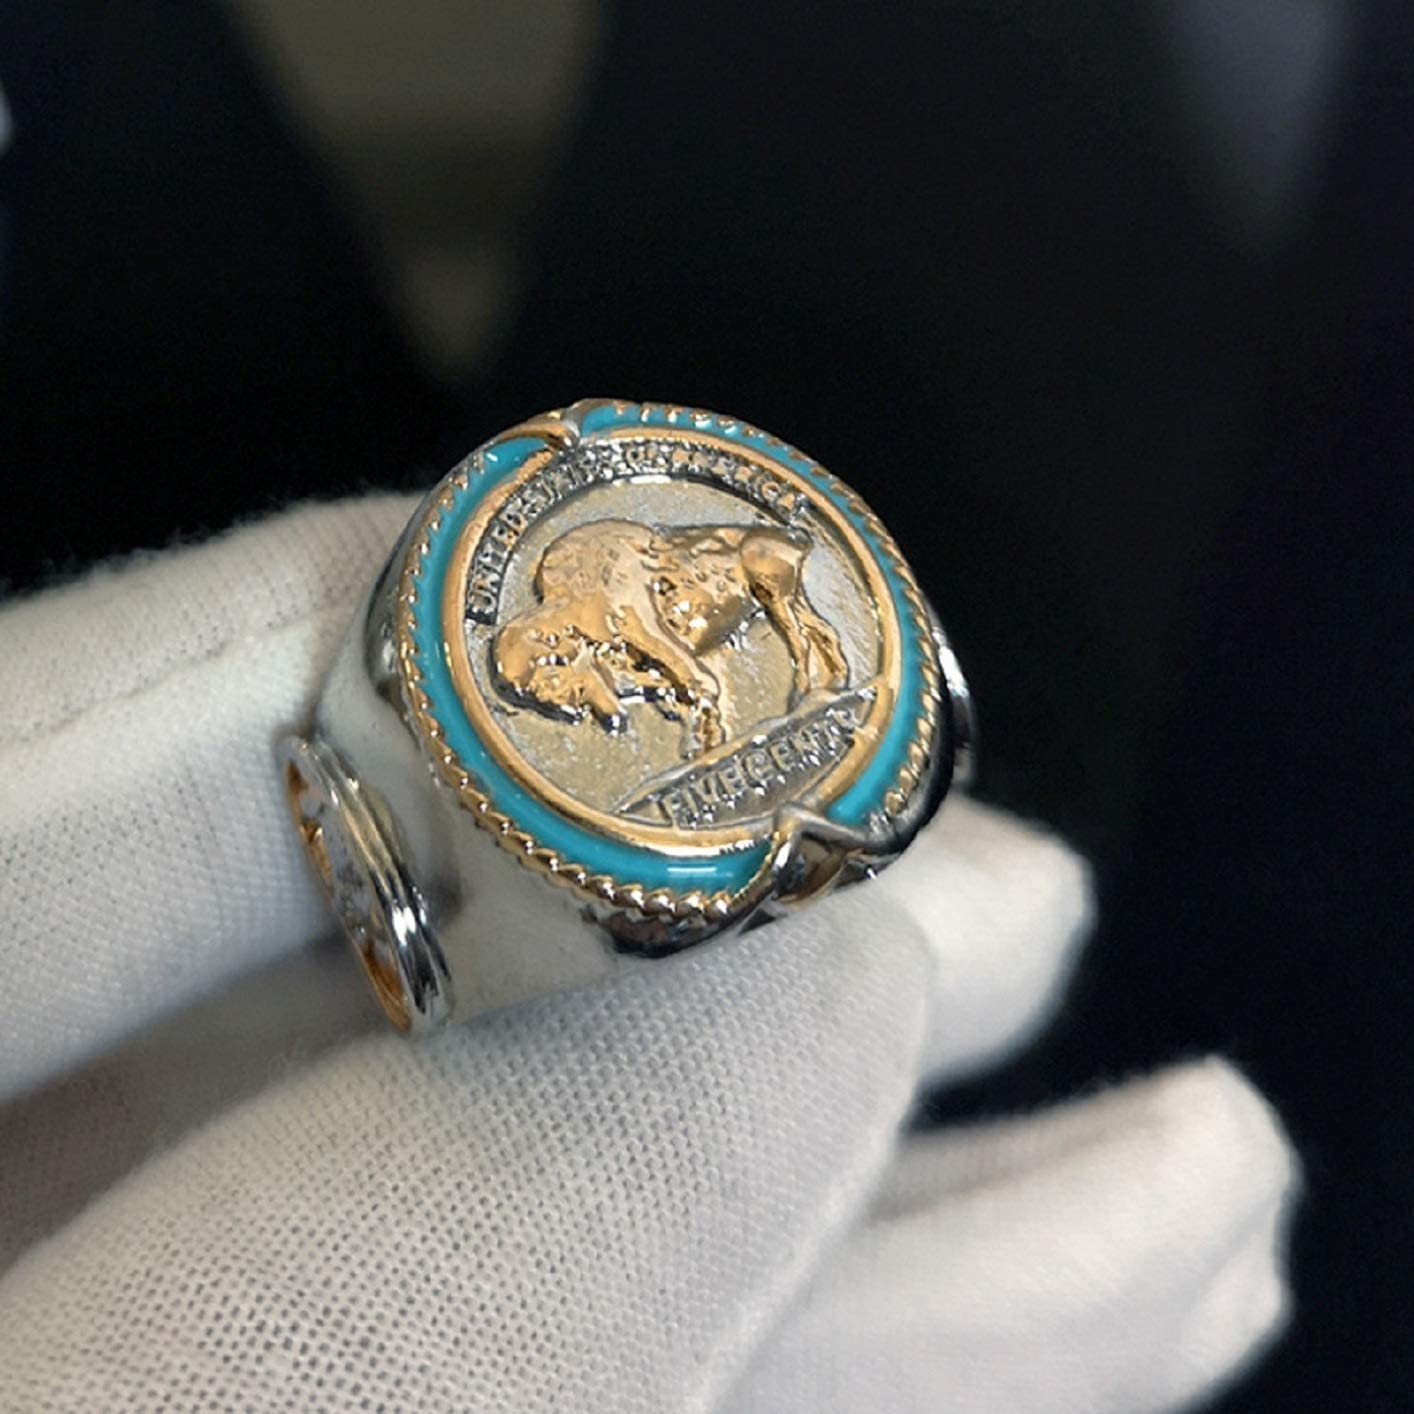 Buffalo Nickel Rings for Men Honoring The American West Alloy Coin Ring Indian Chief Ring Animal Jewelry Gift for Men Boys Husband Viking Bull Ring Amulet Ring Retro Buffalo Totem Rings